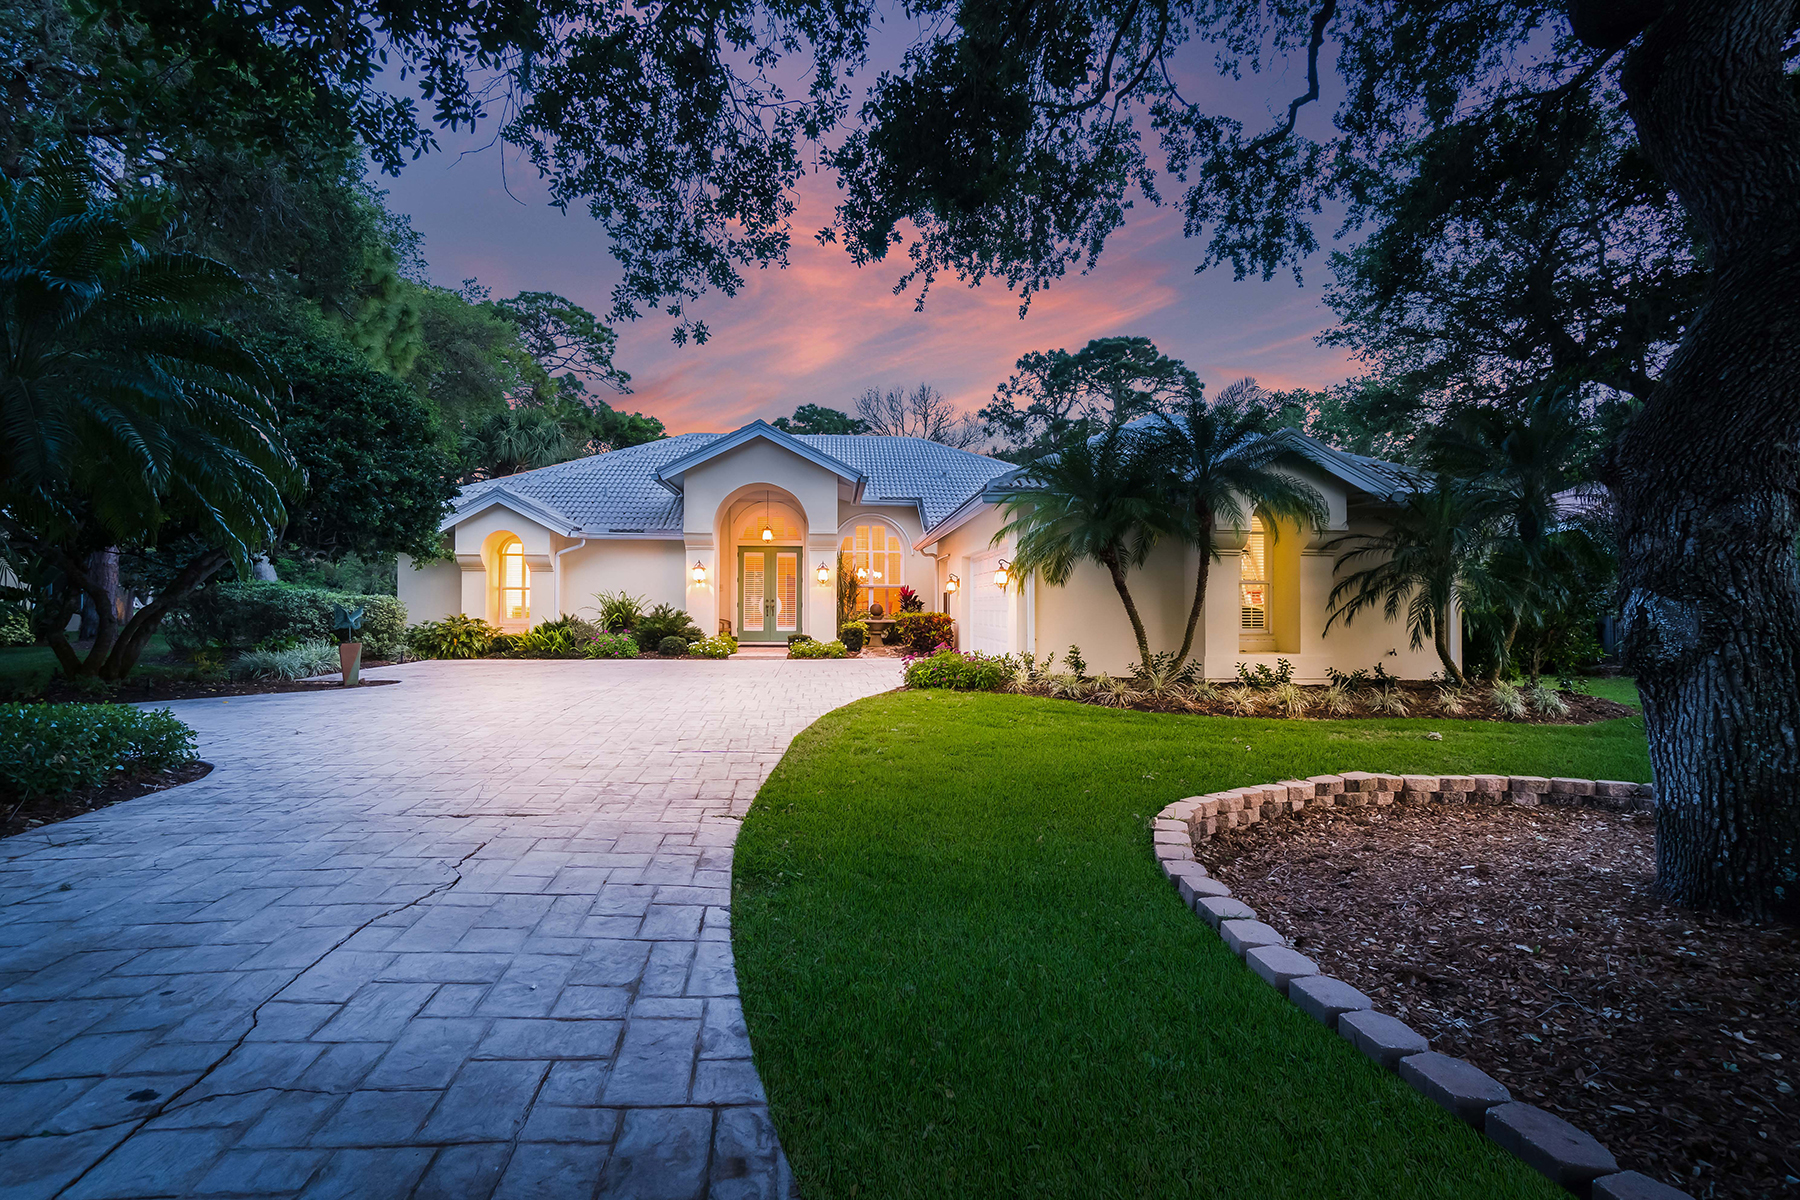 Single Family Home for Sale at THE OAKS CLUB 863 Macewen Dr Osprey, Florida, 34229 United States